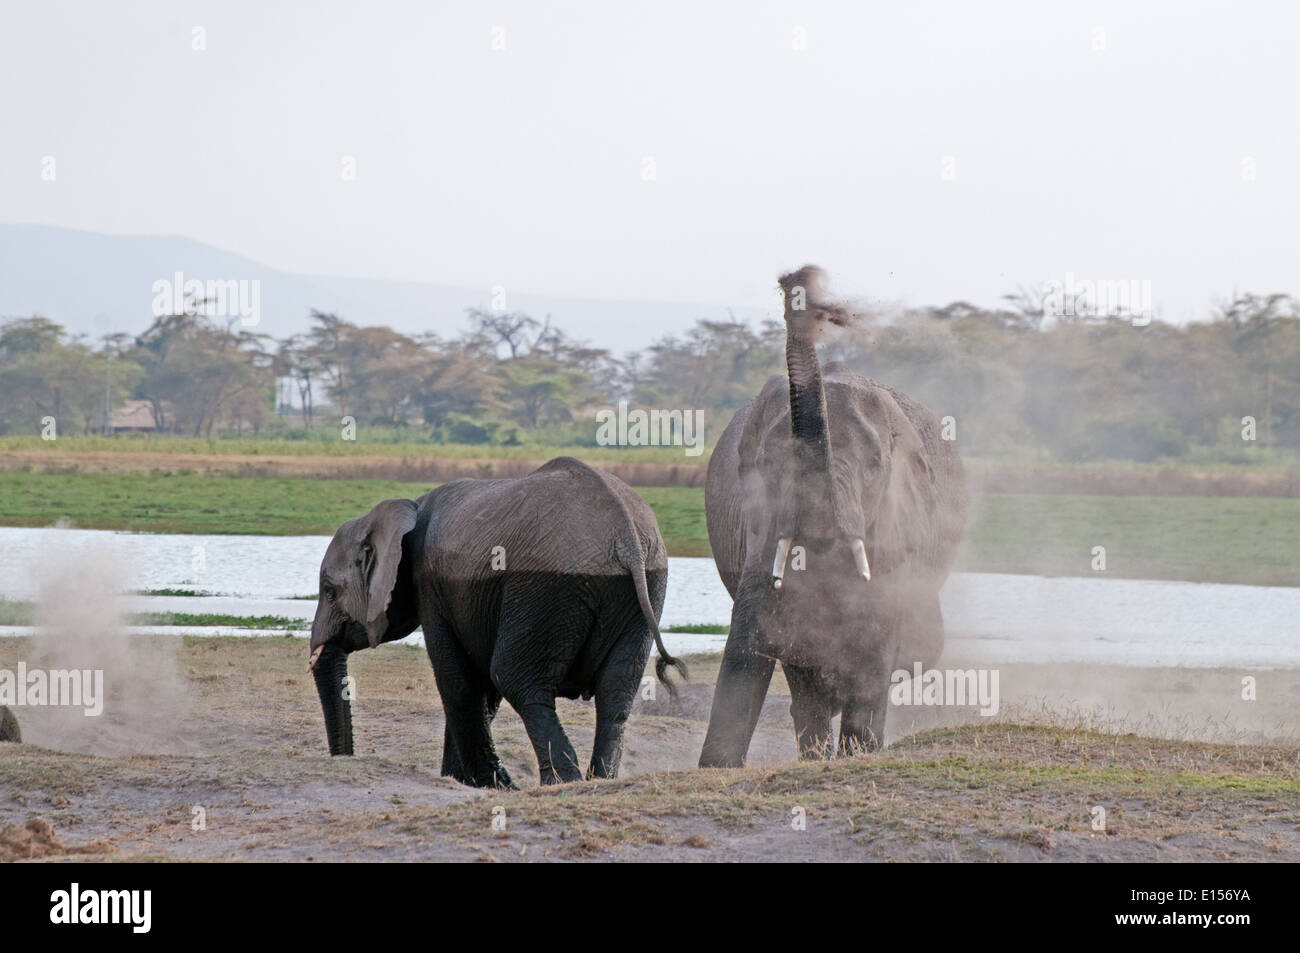 Elephants blowing dust over themselves in Amboseli National Park Kenya - Stock Image